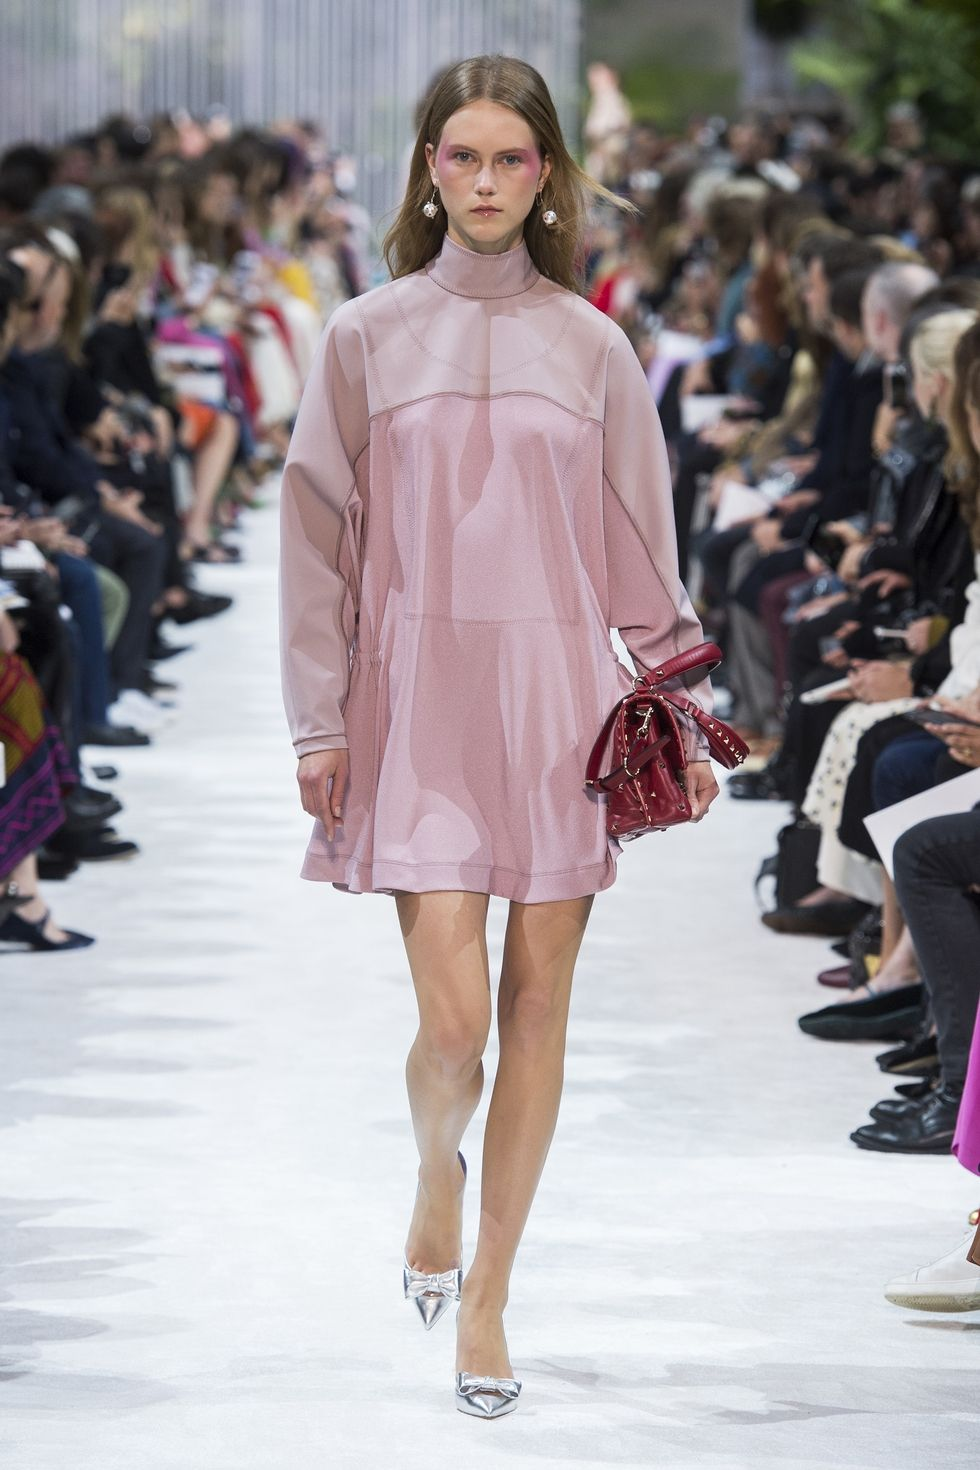 hbz nyfw ss2018 trends lavender 02 valentino rs18 2612 1509389878